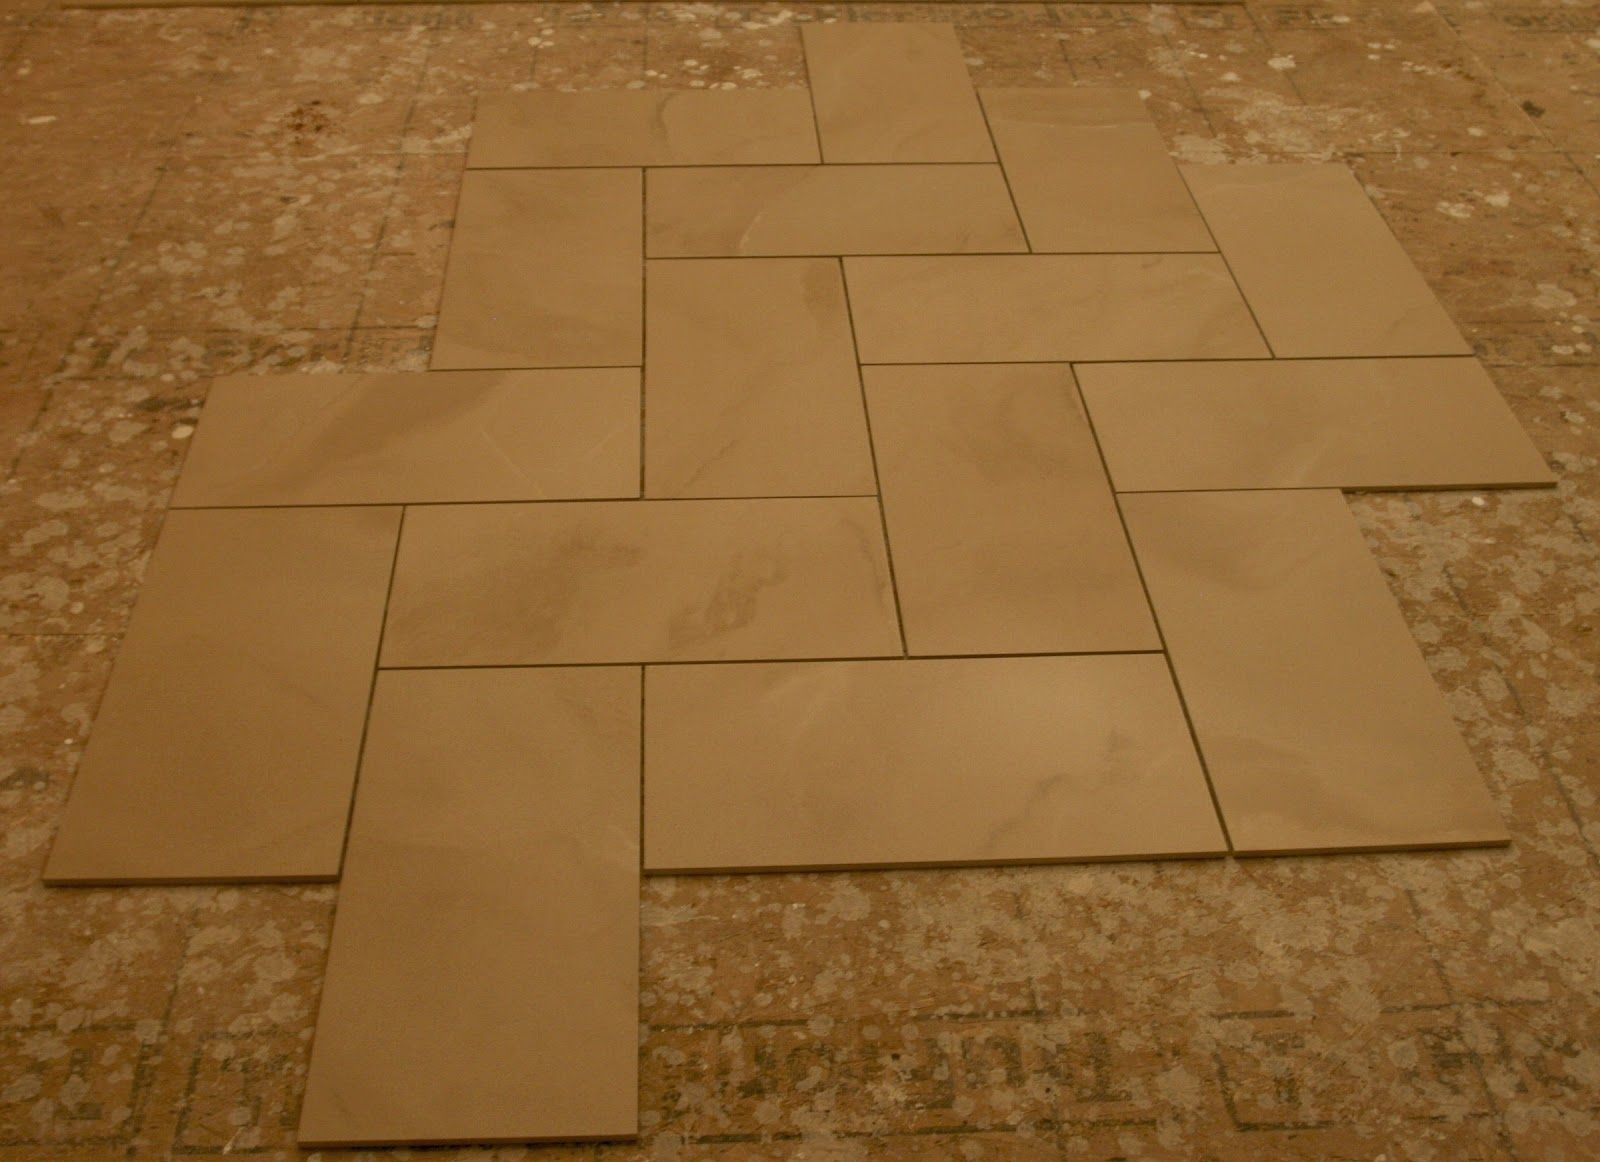 12x24 tile patterns floor pattern options vote for your favorite